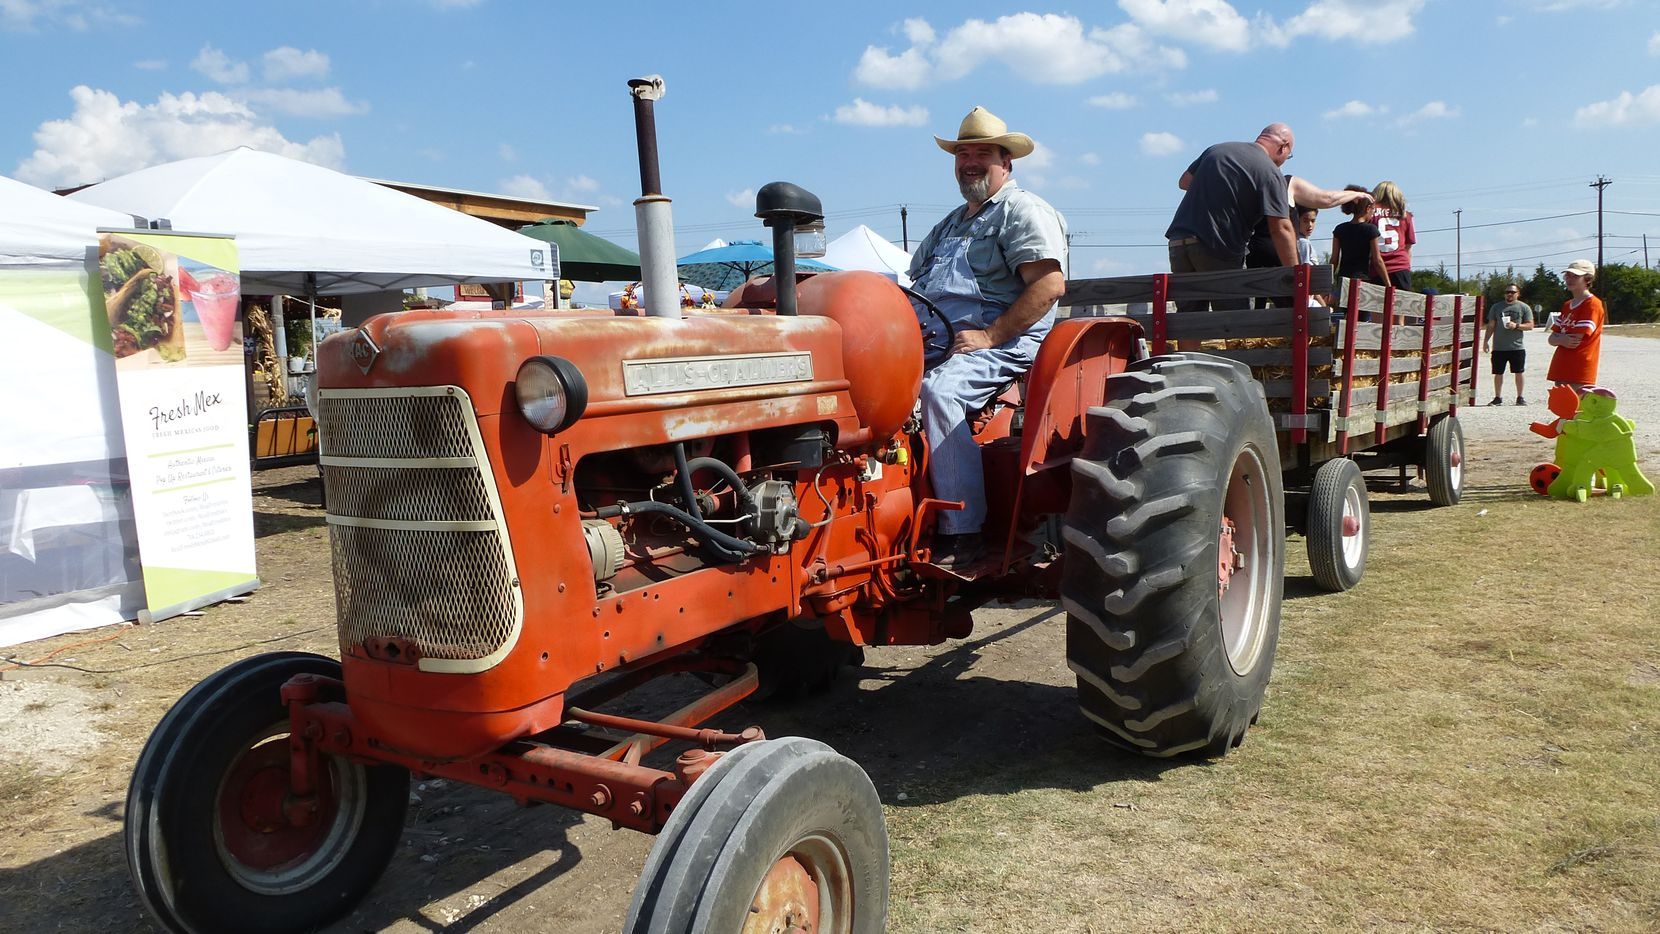 Jake Templin from nearby Anna pulls the hay-ride wagon with a 1958 Allis-Chalmers tractor at Lola's Pumpkin Patch at Lola's Local Market in Melissa. He provides several vintage tractors.